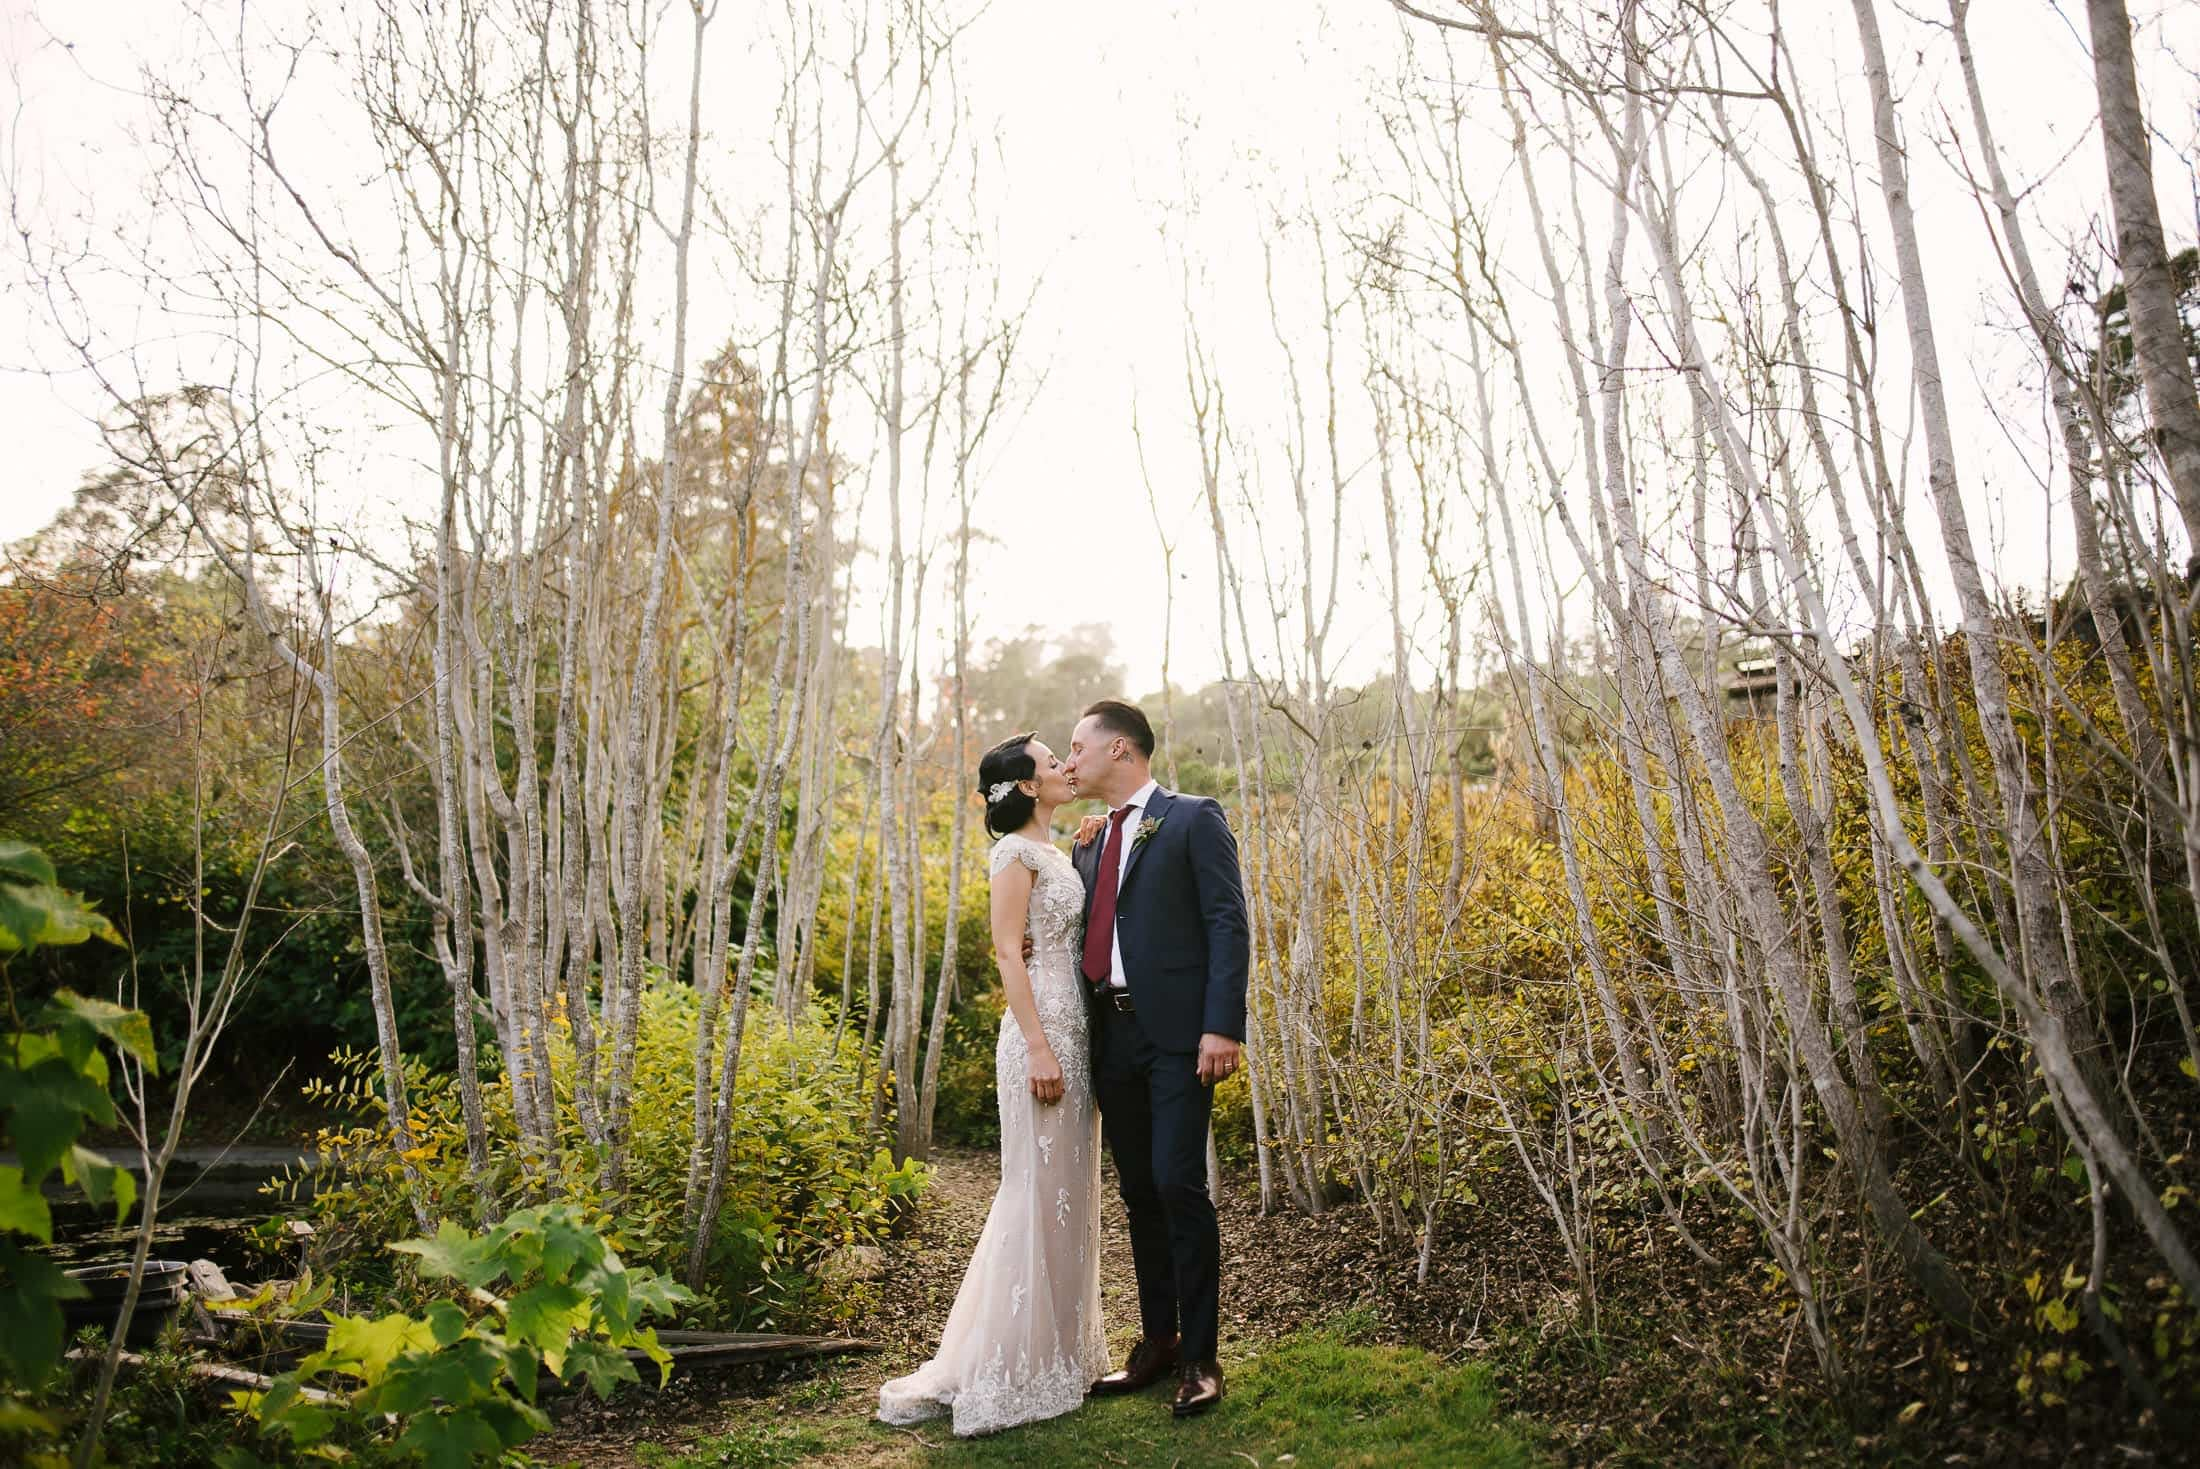 Botanical Garden Wedding Oakland